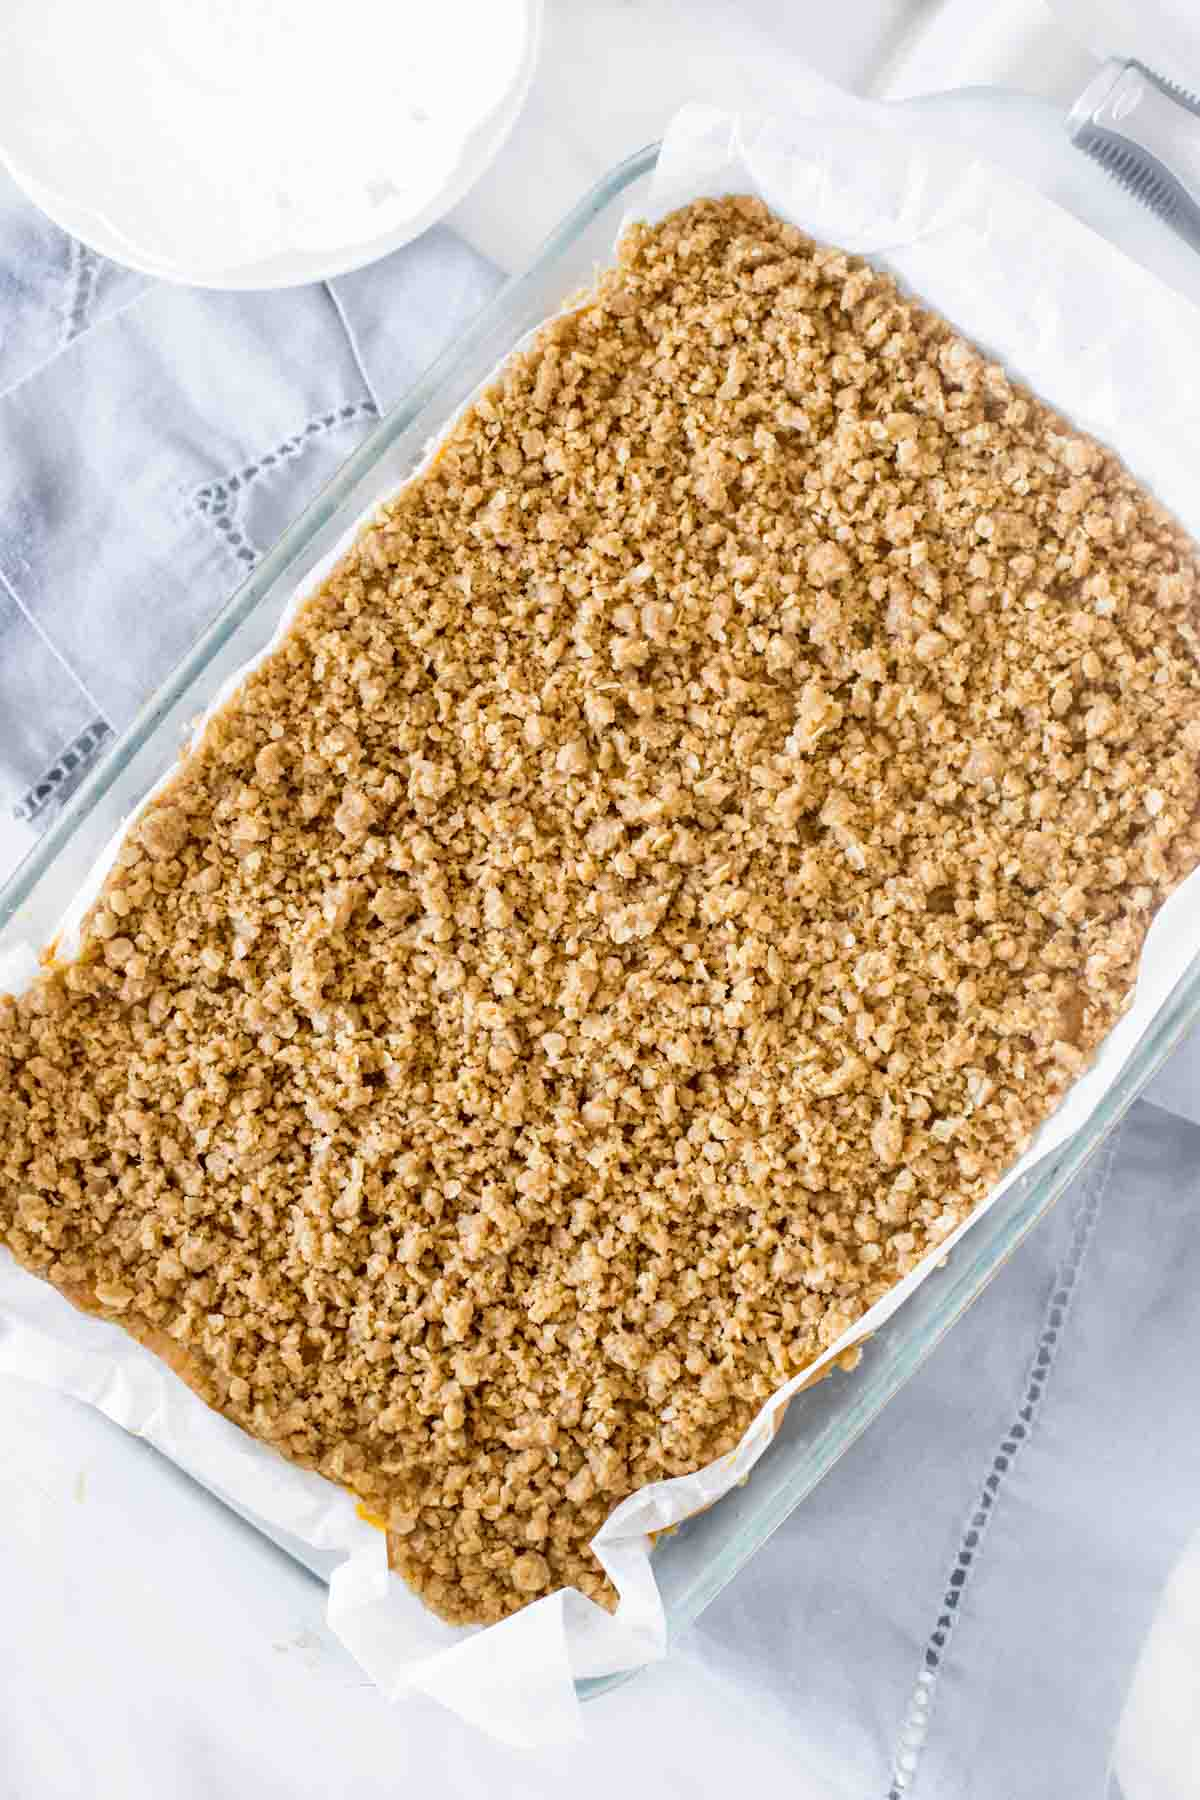 9x13 inch pan of pumpkin bars with streusel topping, from above.